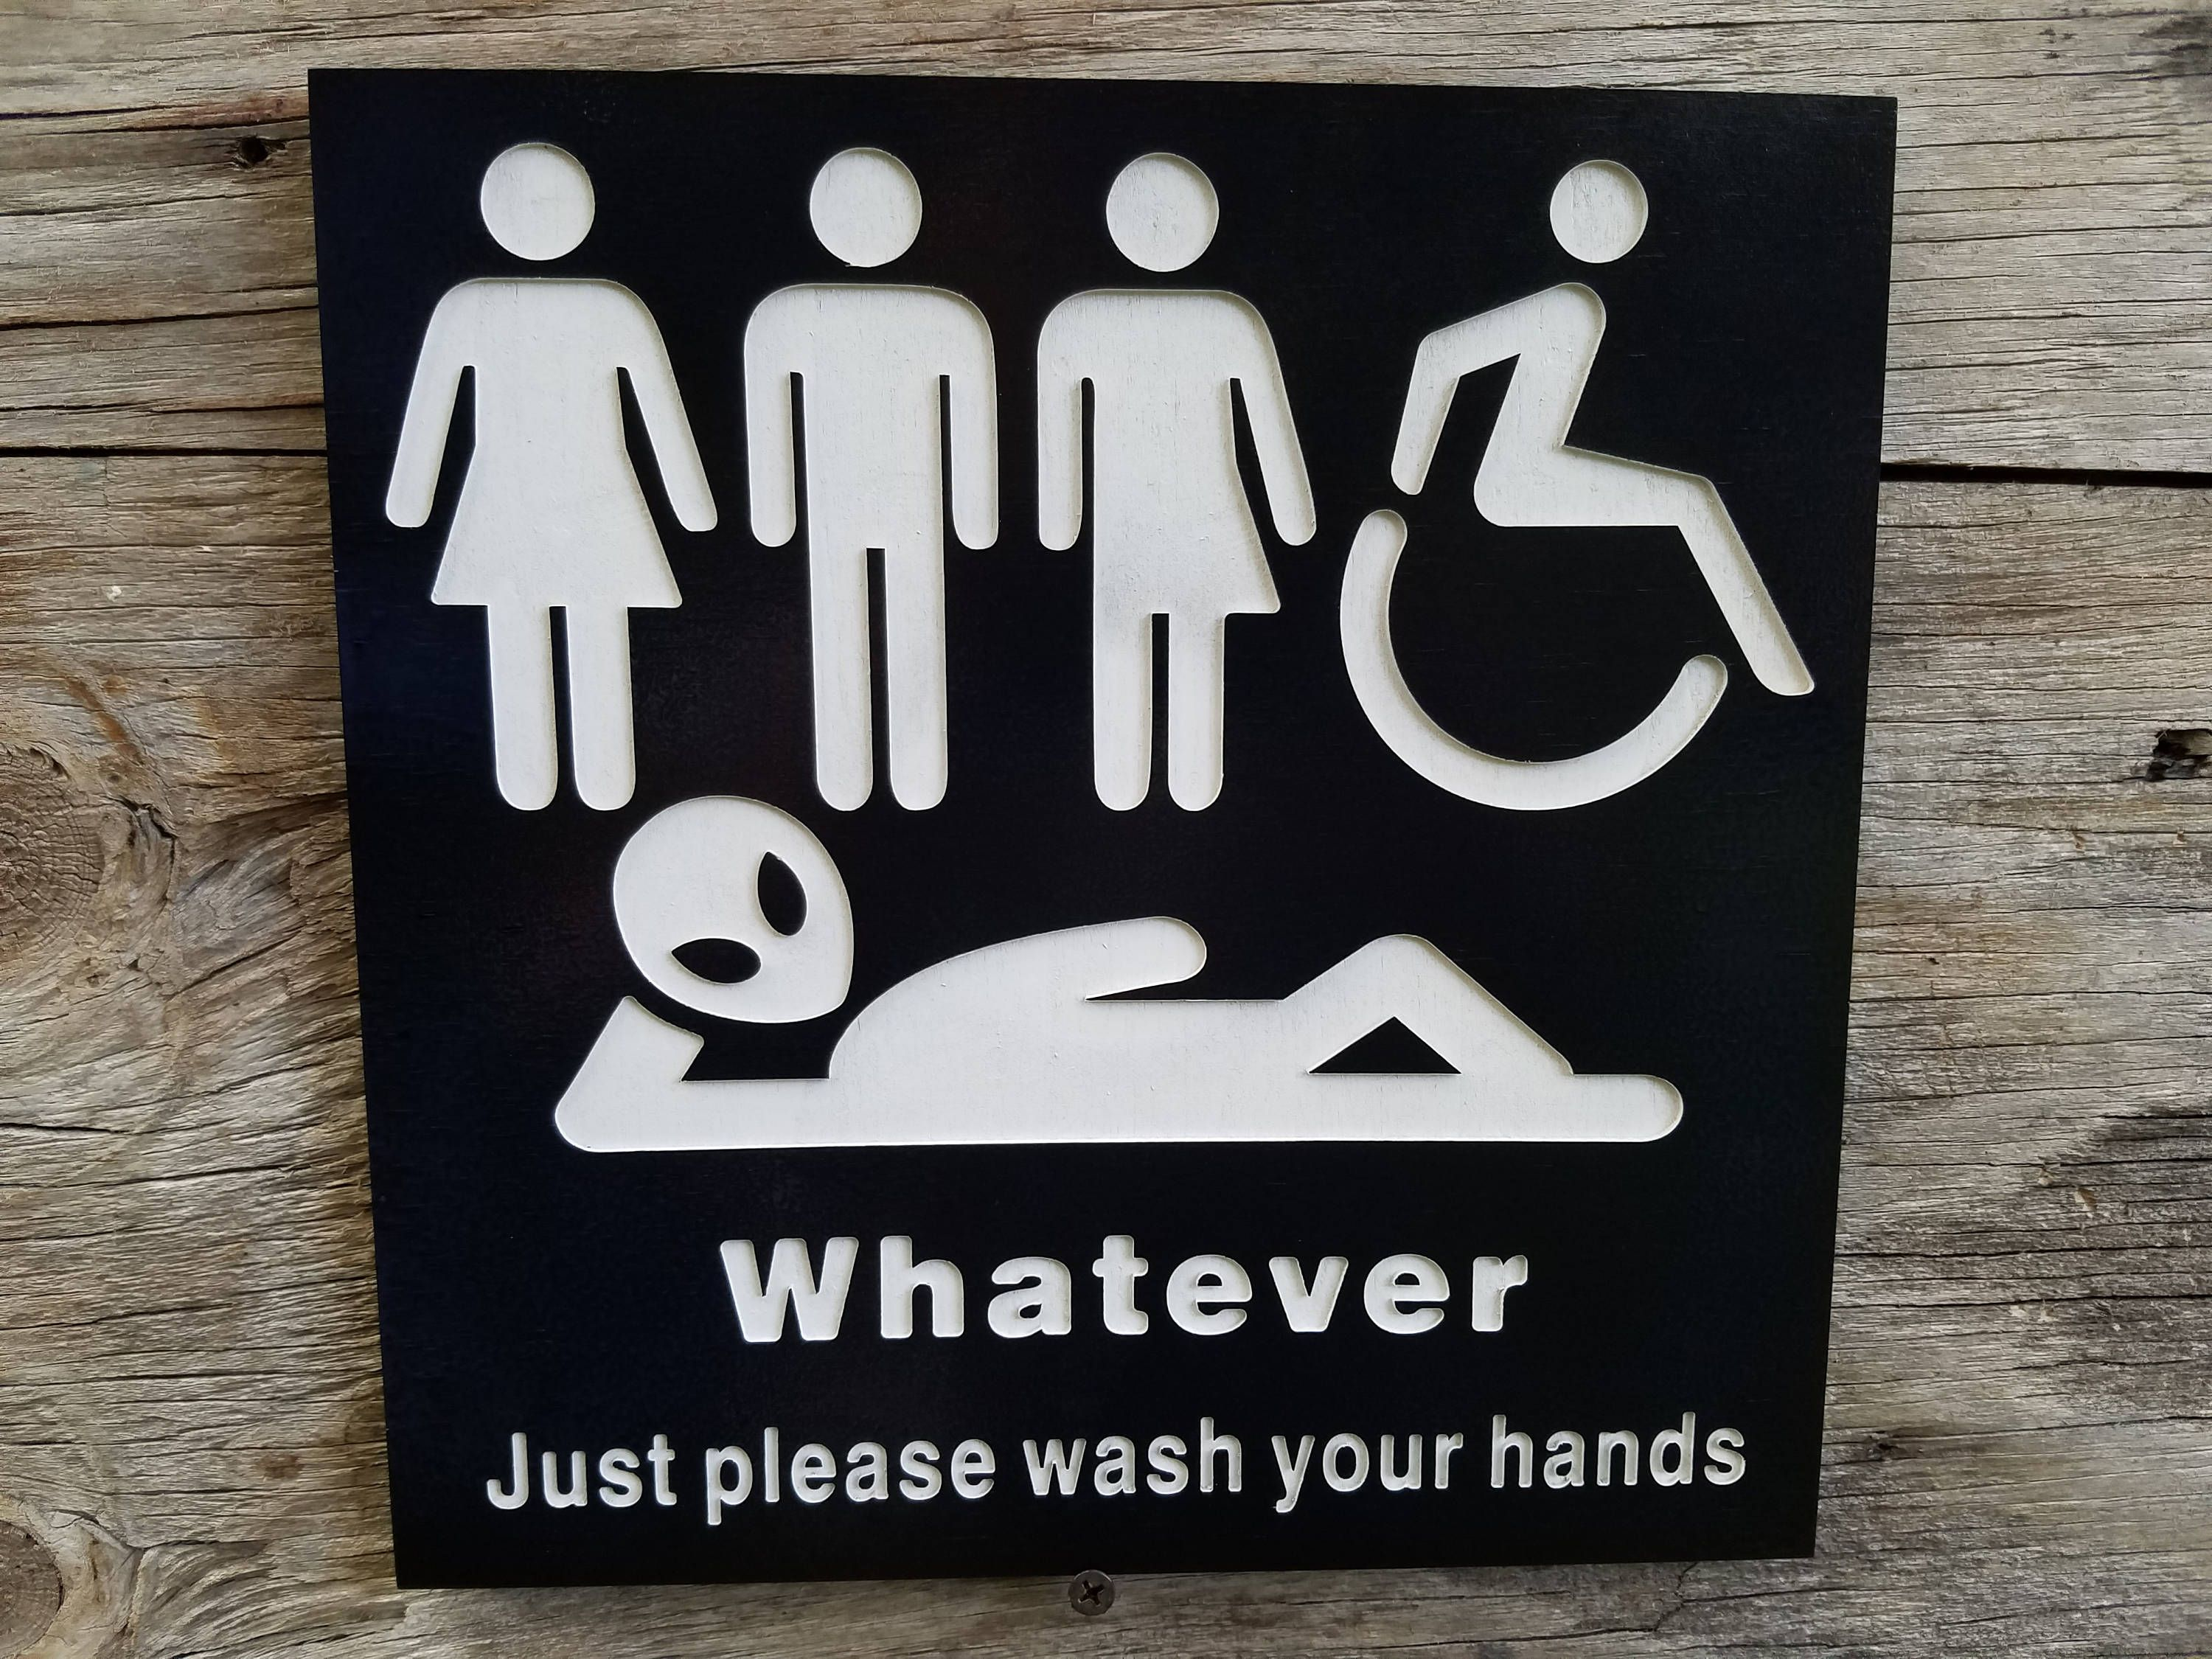 just bathroom signs. All Gender Restroom Sign Whatever Just Wash Your Hands Alien Bathroom Unisex Transgender Handicap Signs I